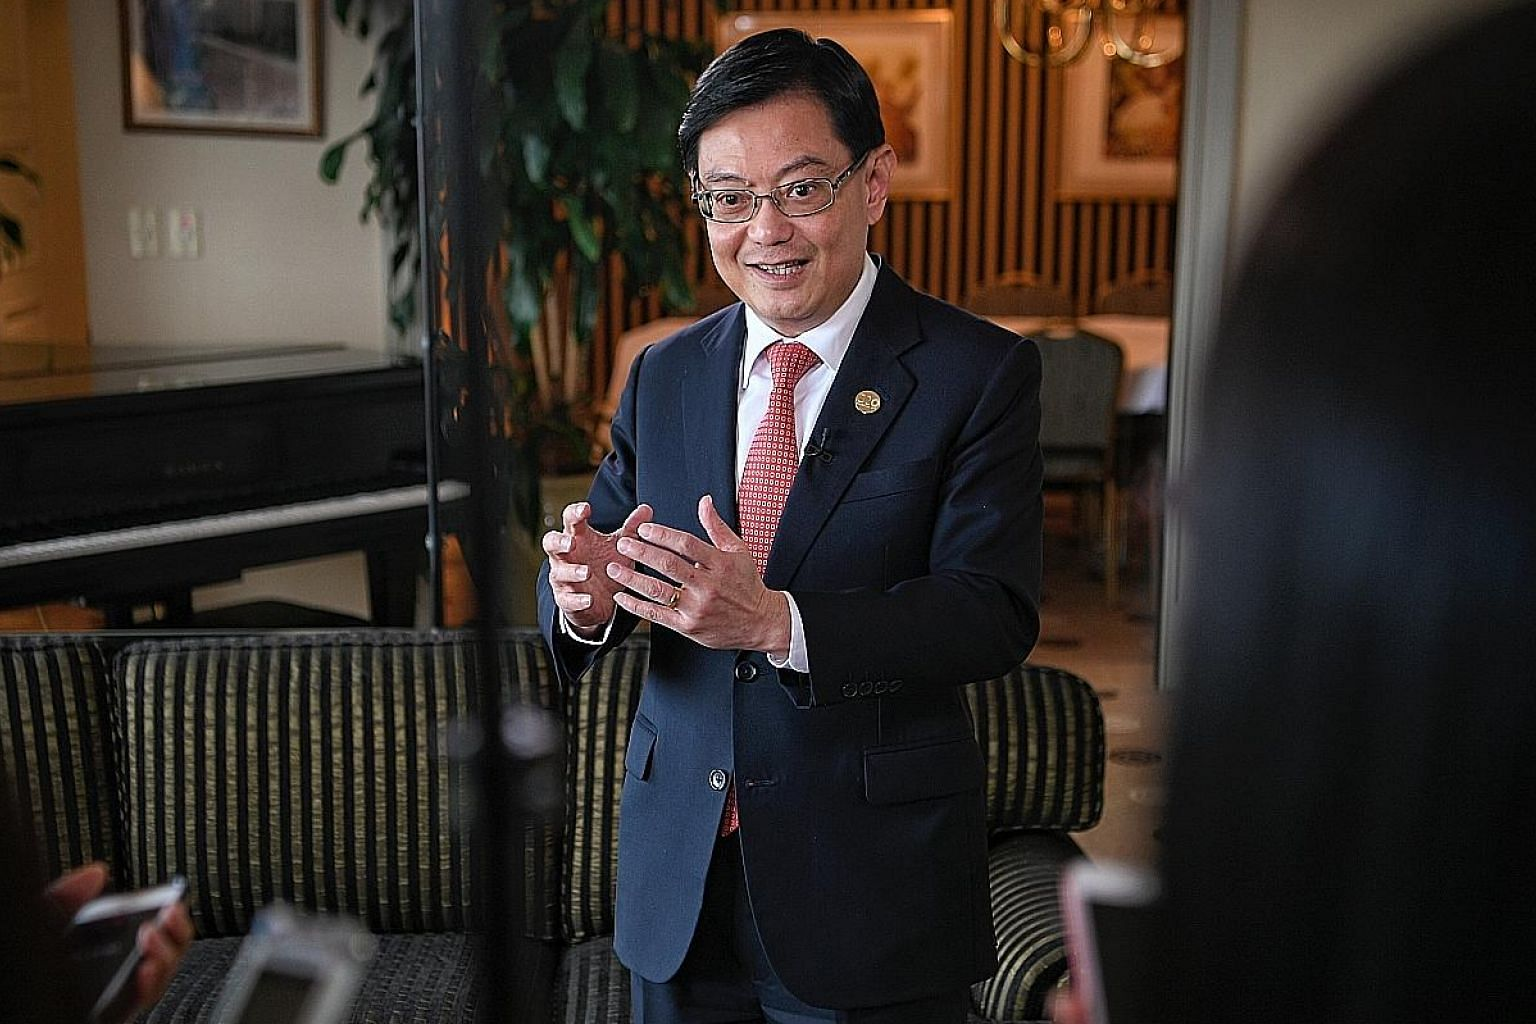 Finance Minister Heng Swee Keat speaking to reporters on Saturday after the end of the G-20 summit. He said the 4G ministers will examine the fundamental, long-term issues that Singapore needs to address.